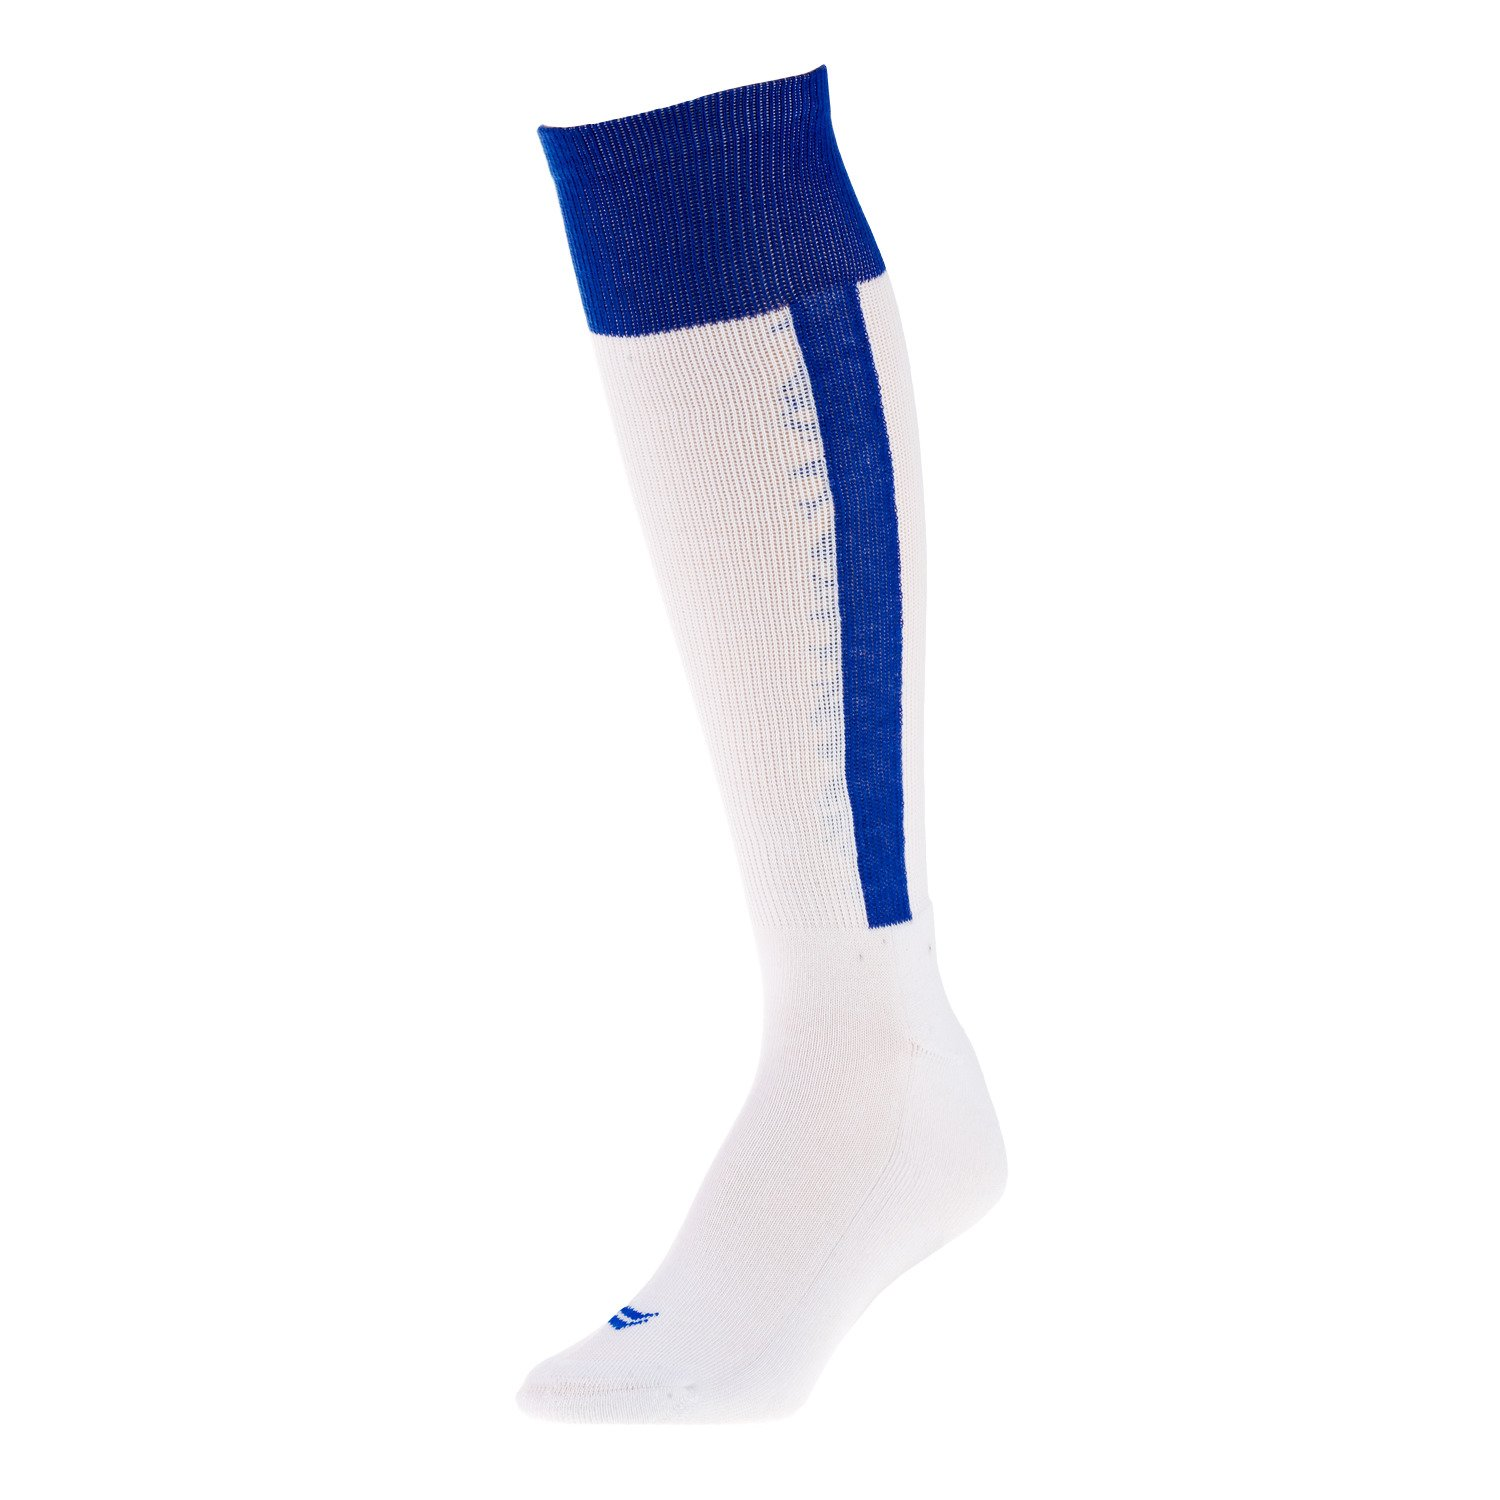 06122444b0f6 Display product reviews for Sof Sole Team Kids' Performance Baseball  Stirrup Socks X-Small